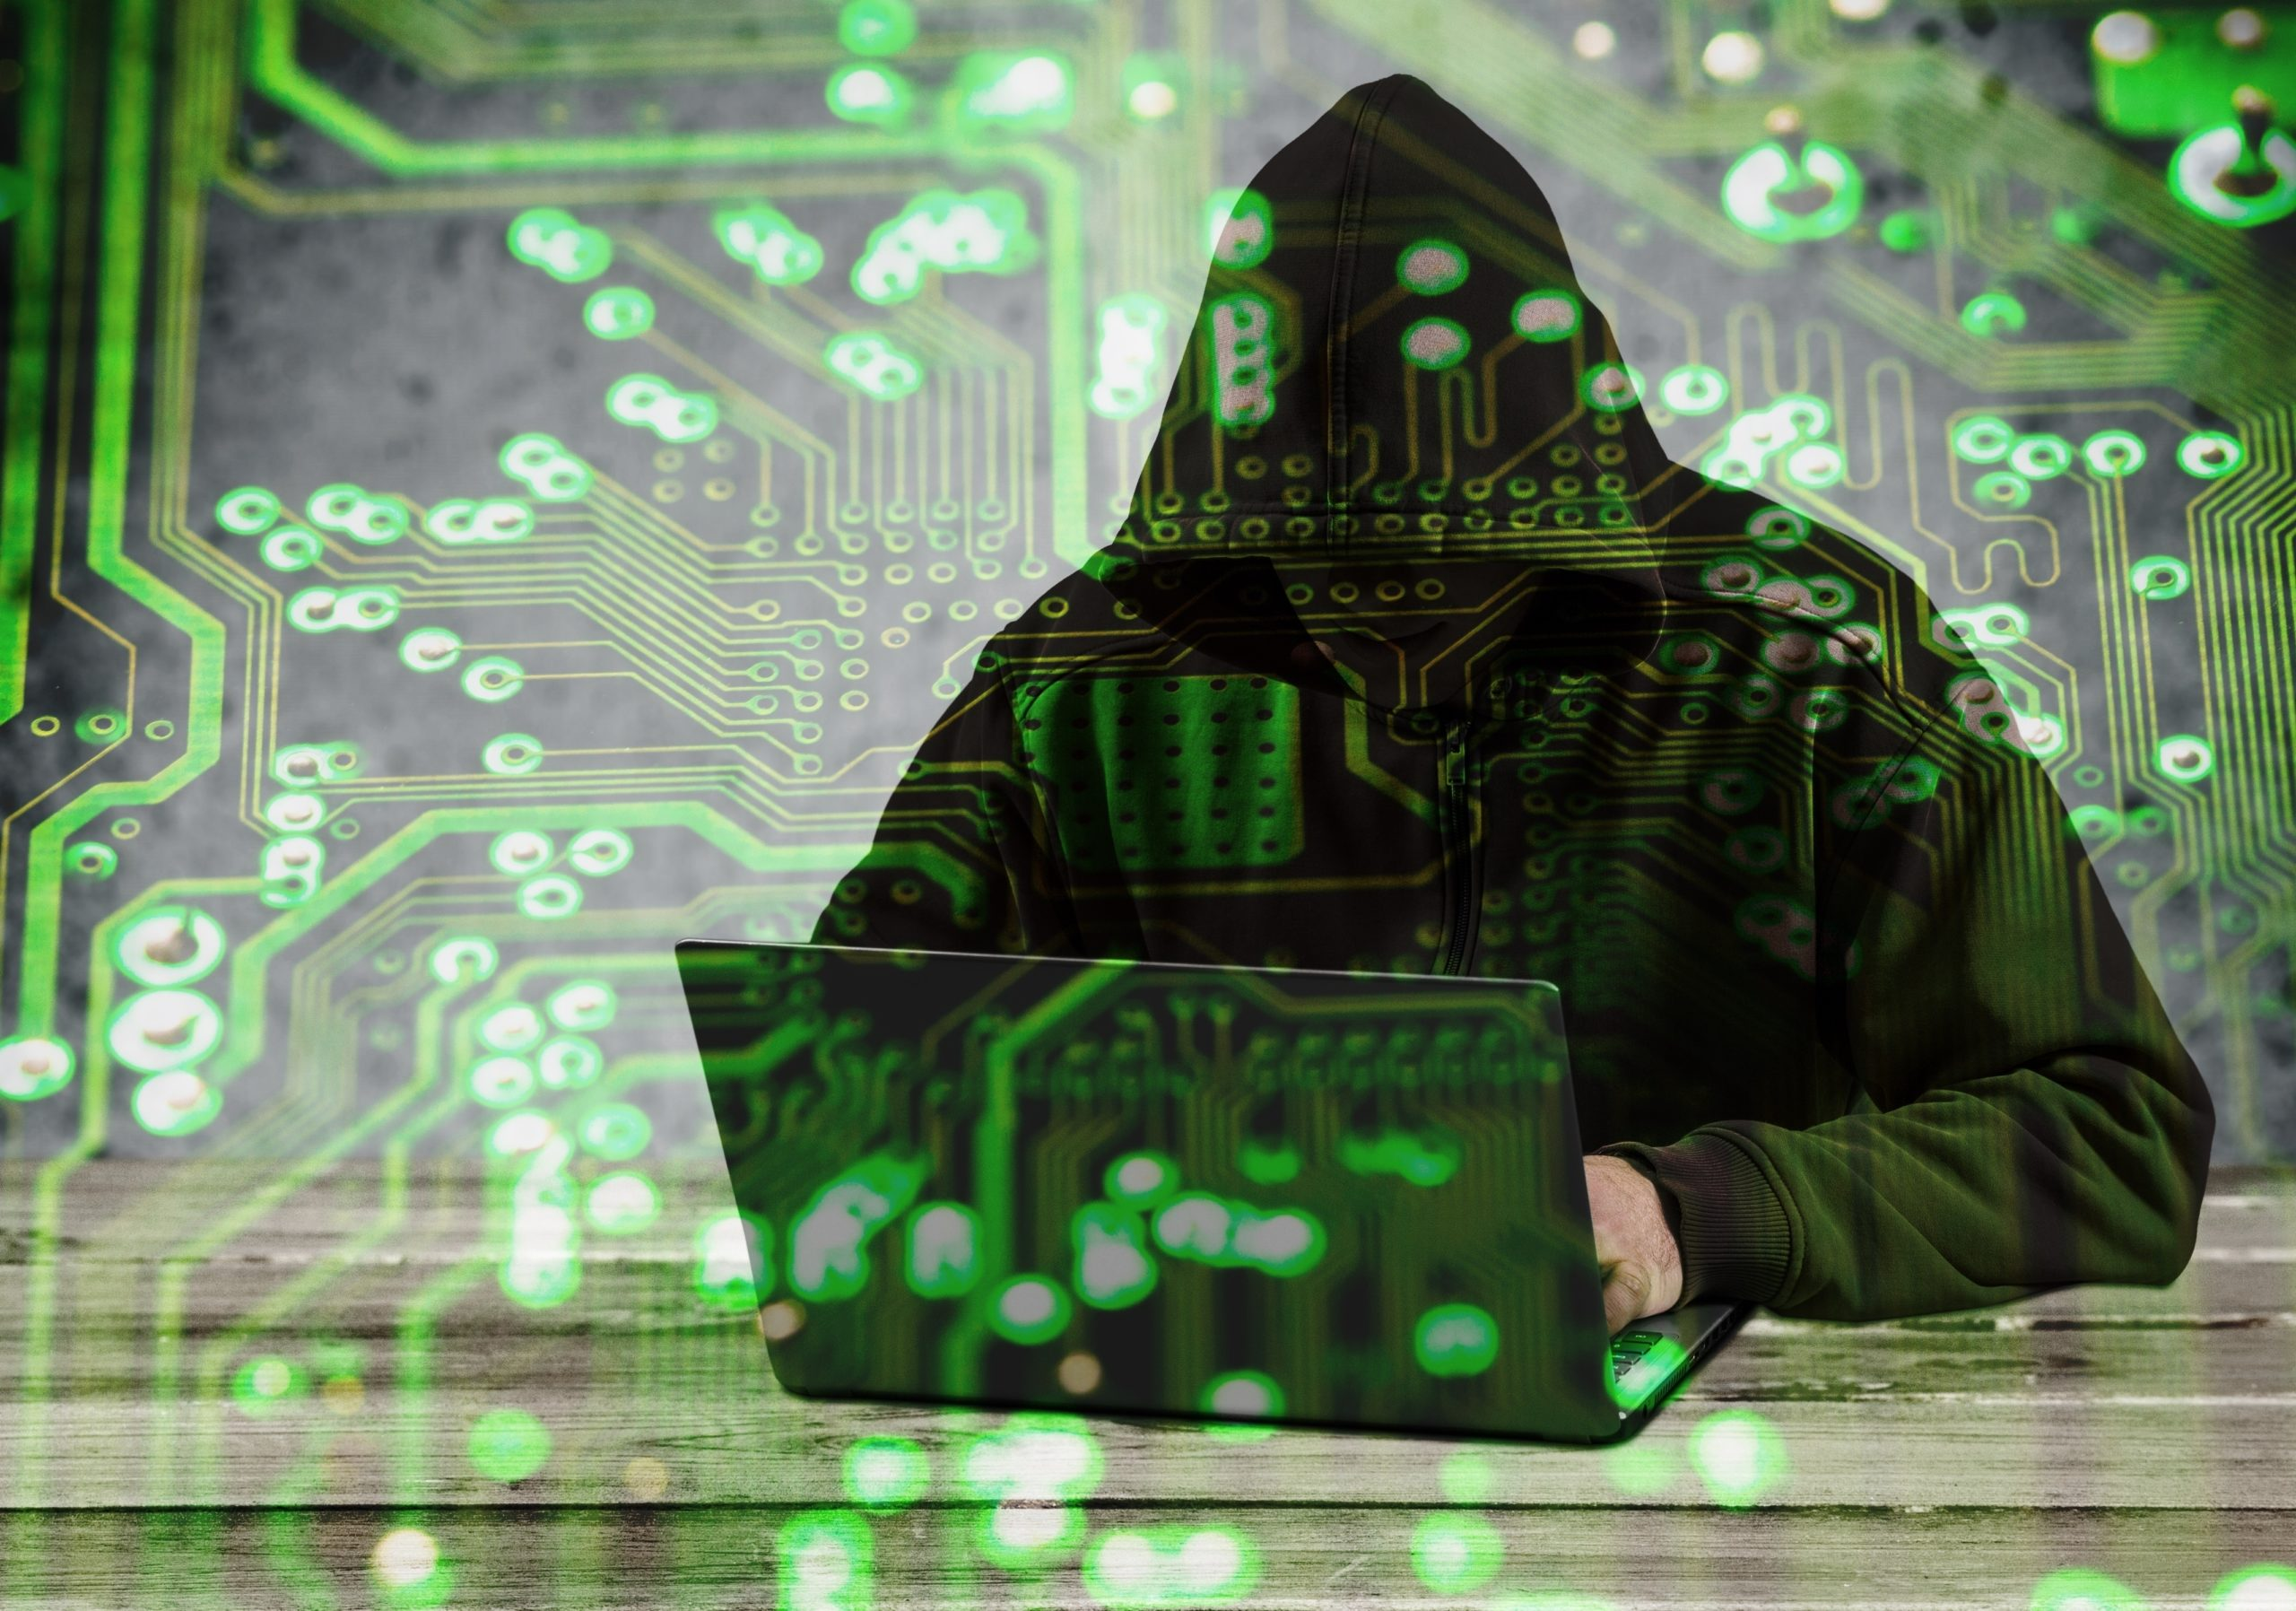 ALERT: Watch Out for COVID-19 Cyber Scams and phishing scams